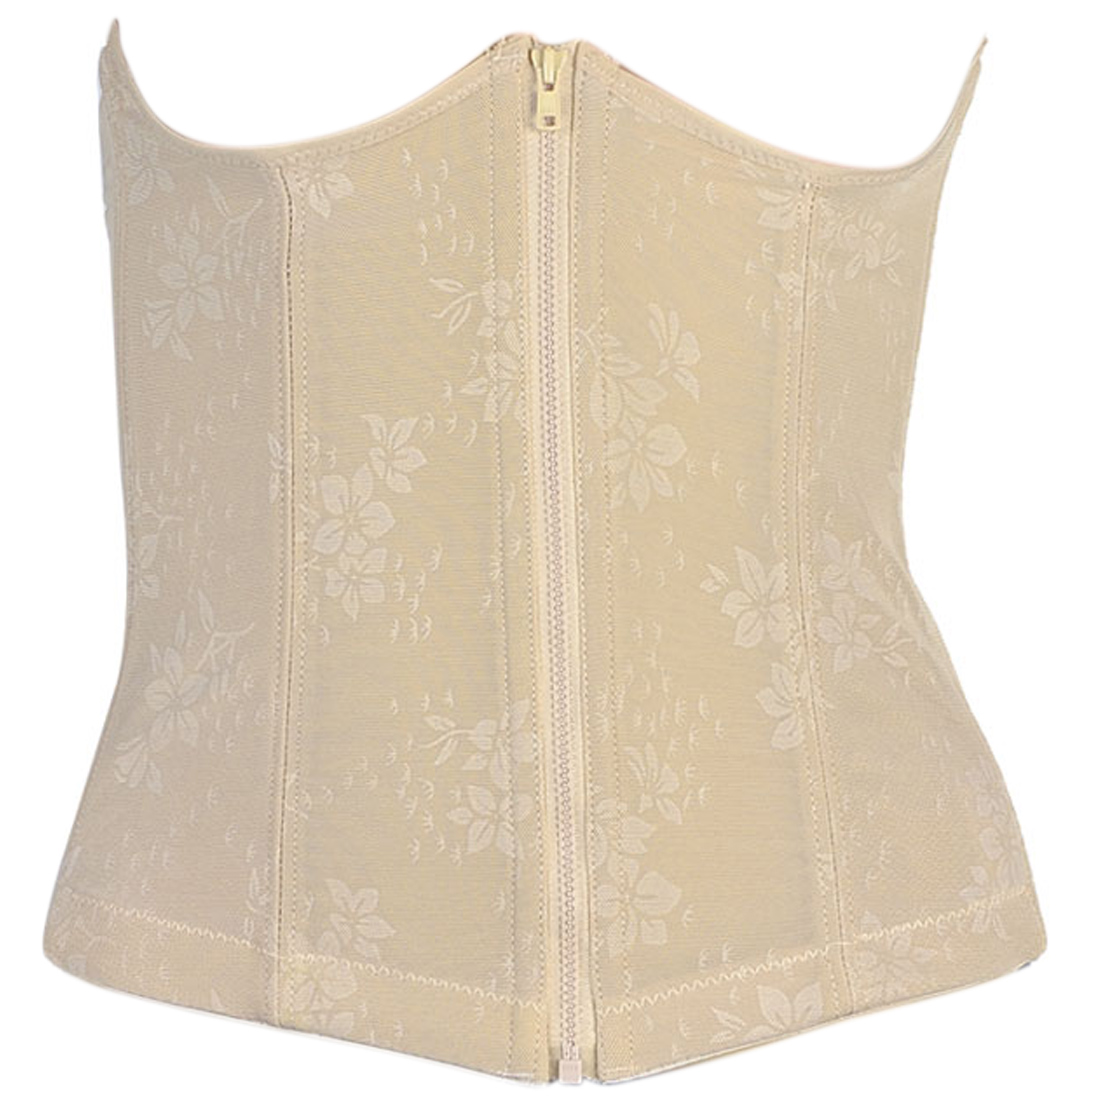 Ladies Stretch Shapewear Slimming Belt Zip Front Corset Waist Cincher Beige XS